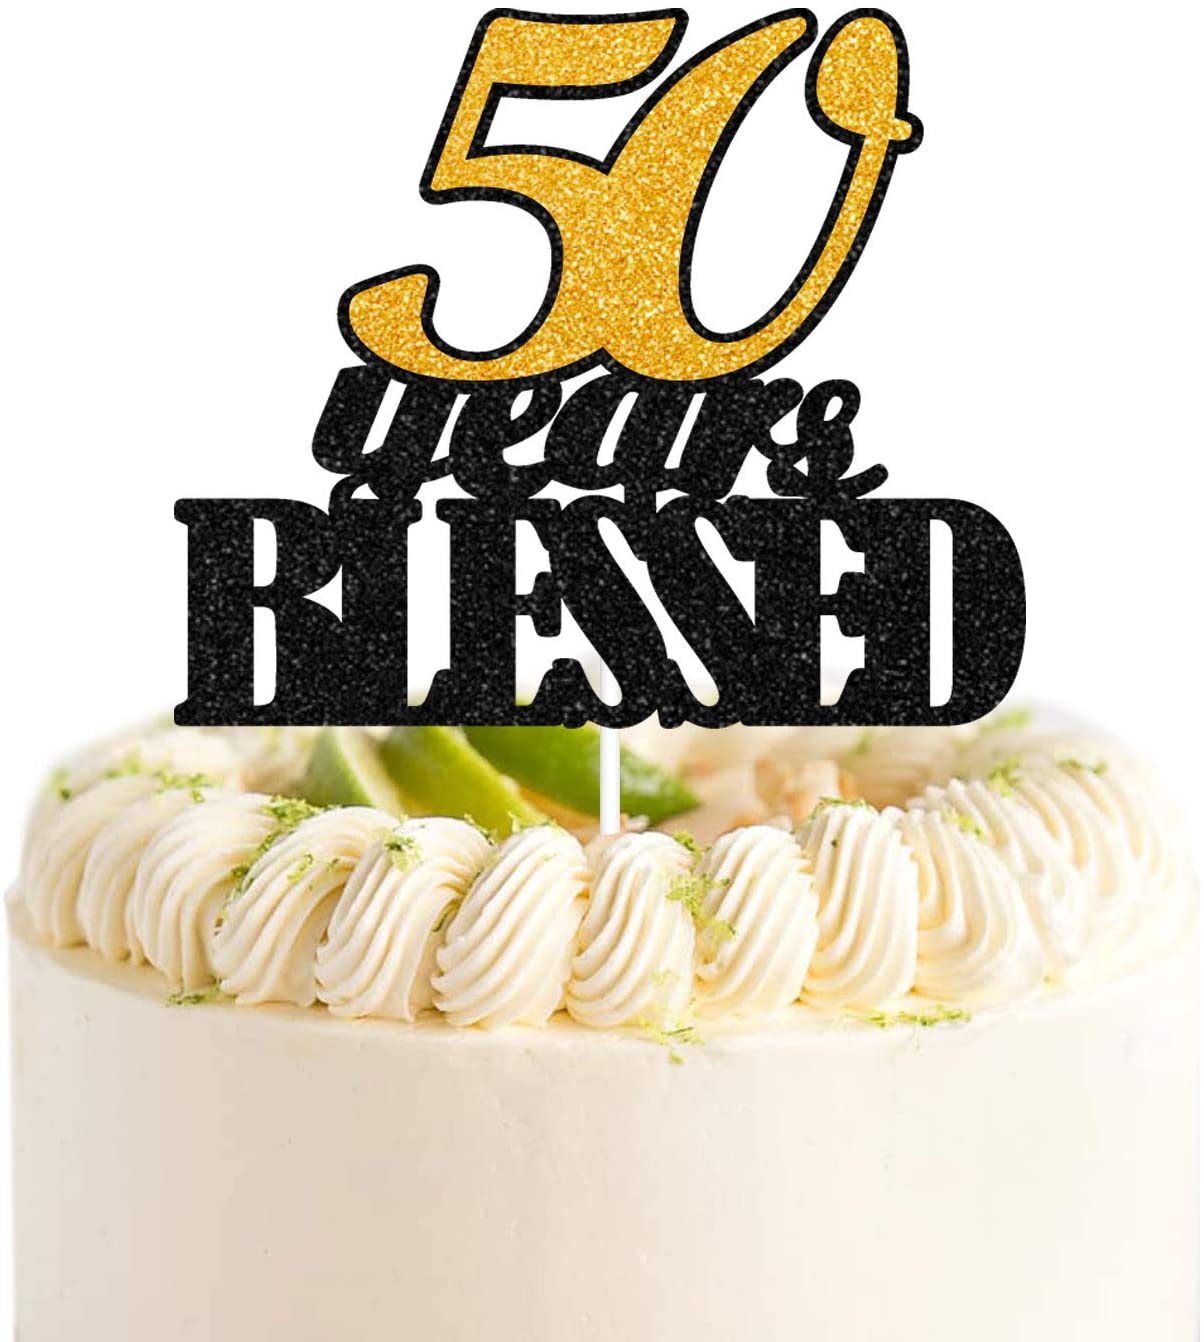 50 Years Blessed Black Gold Glitter Cake Toppers 50 Years Old 50th Birthday Anniversary Party Decorations Gift Supplies